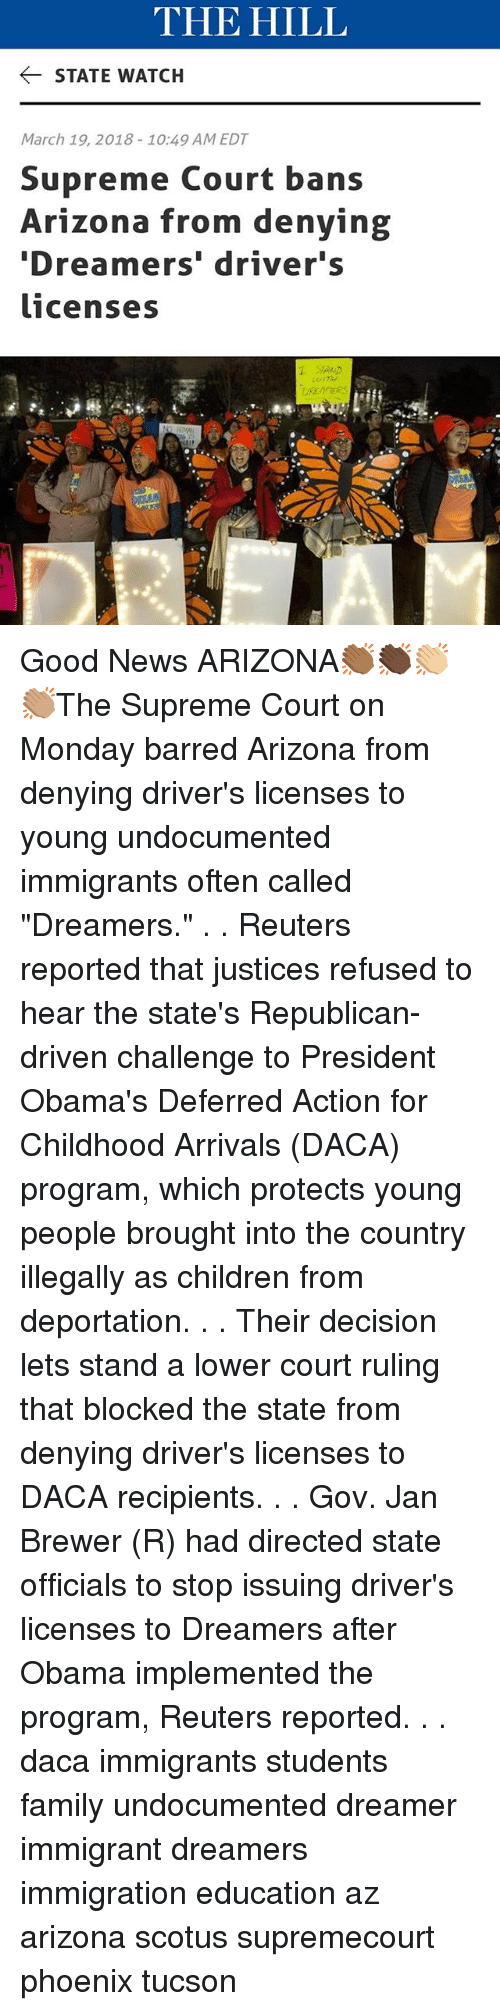 """Deportation: THE HILL  STATE WATCH  March 19, 2018-10:49 AM EDT  Supreme Court bans  Arizona from denying  Dreamers' driver's  licenses Good News ARIZONA👏🏾👏🏿👏🏼👏🏽The Supreme Court on Monday barred Arizona from denying driver's licenses to young undocumented immigrants often called """"Dreamers."""" . . Reuters reported that justices refused to hear the state's Republican-driven challenge to President Obama's Deferred Action for Childhood Arrivals (DACA) program, which protects young people brought into the country illegally as children from deportation. . . Their decision lets stand a lower court ruling that blocked the state from denying driver's licenses to DACA recipients. . . Gov. Jan Brewer (R) had directed state officials to stop issuing driver's licenses to Dreamers after Obama implemented the program, Reuters reported. . . daca immigrants students family undocumented dreamer immigrant dreamers immigration education az arizona scotus supremecourt phoenix tucson"""